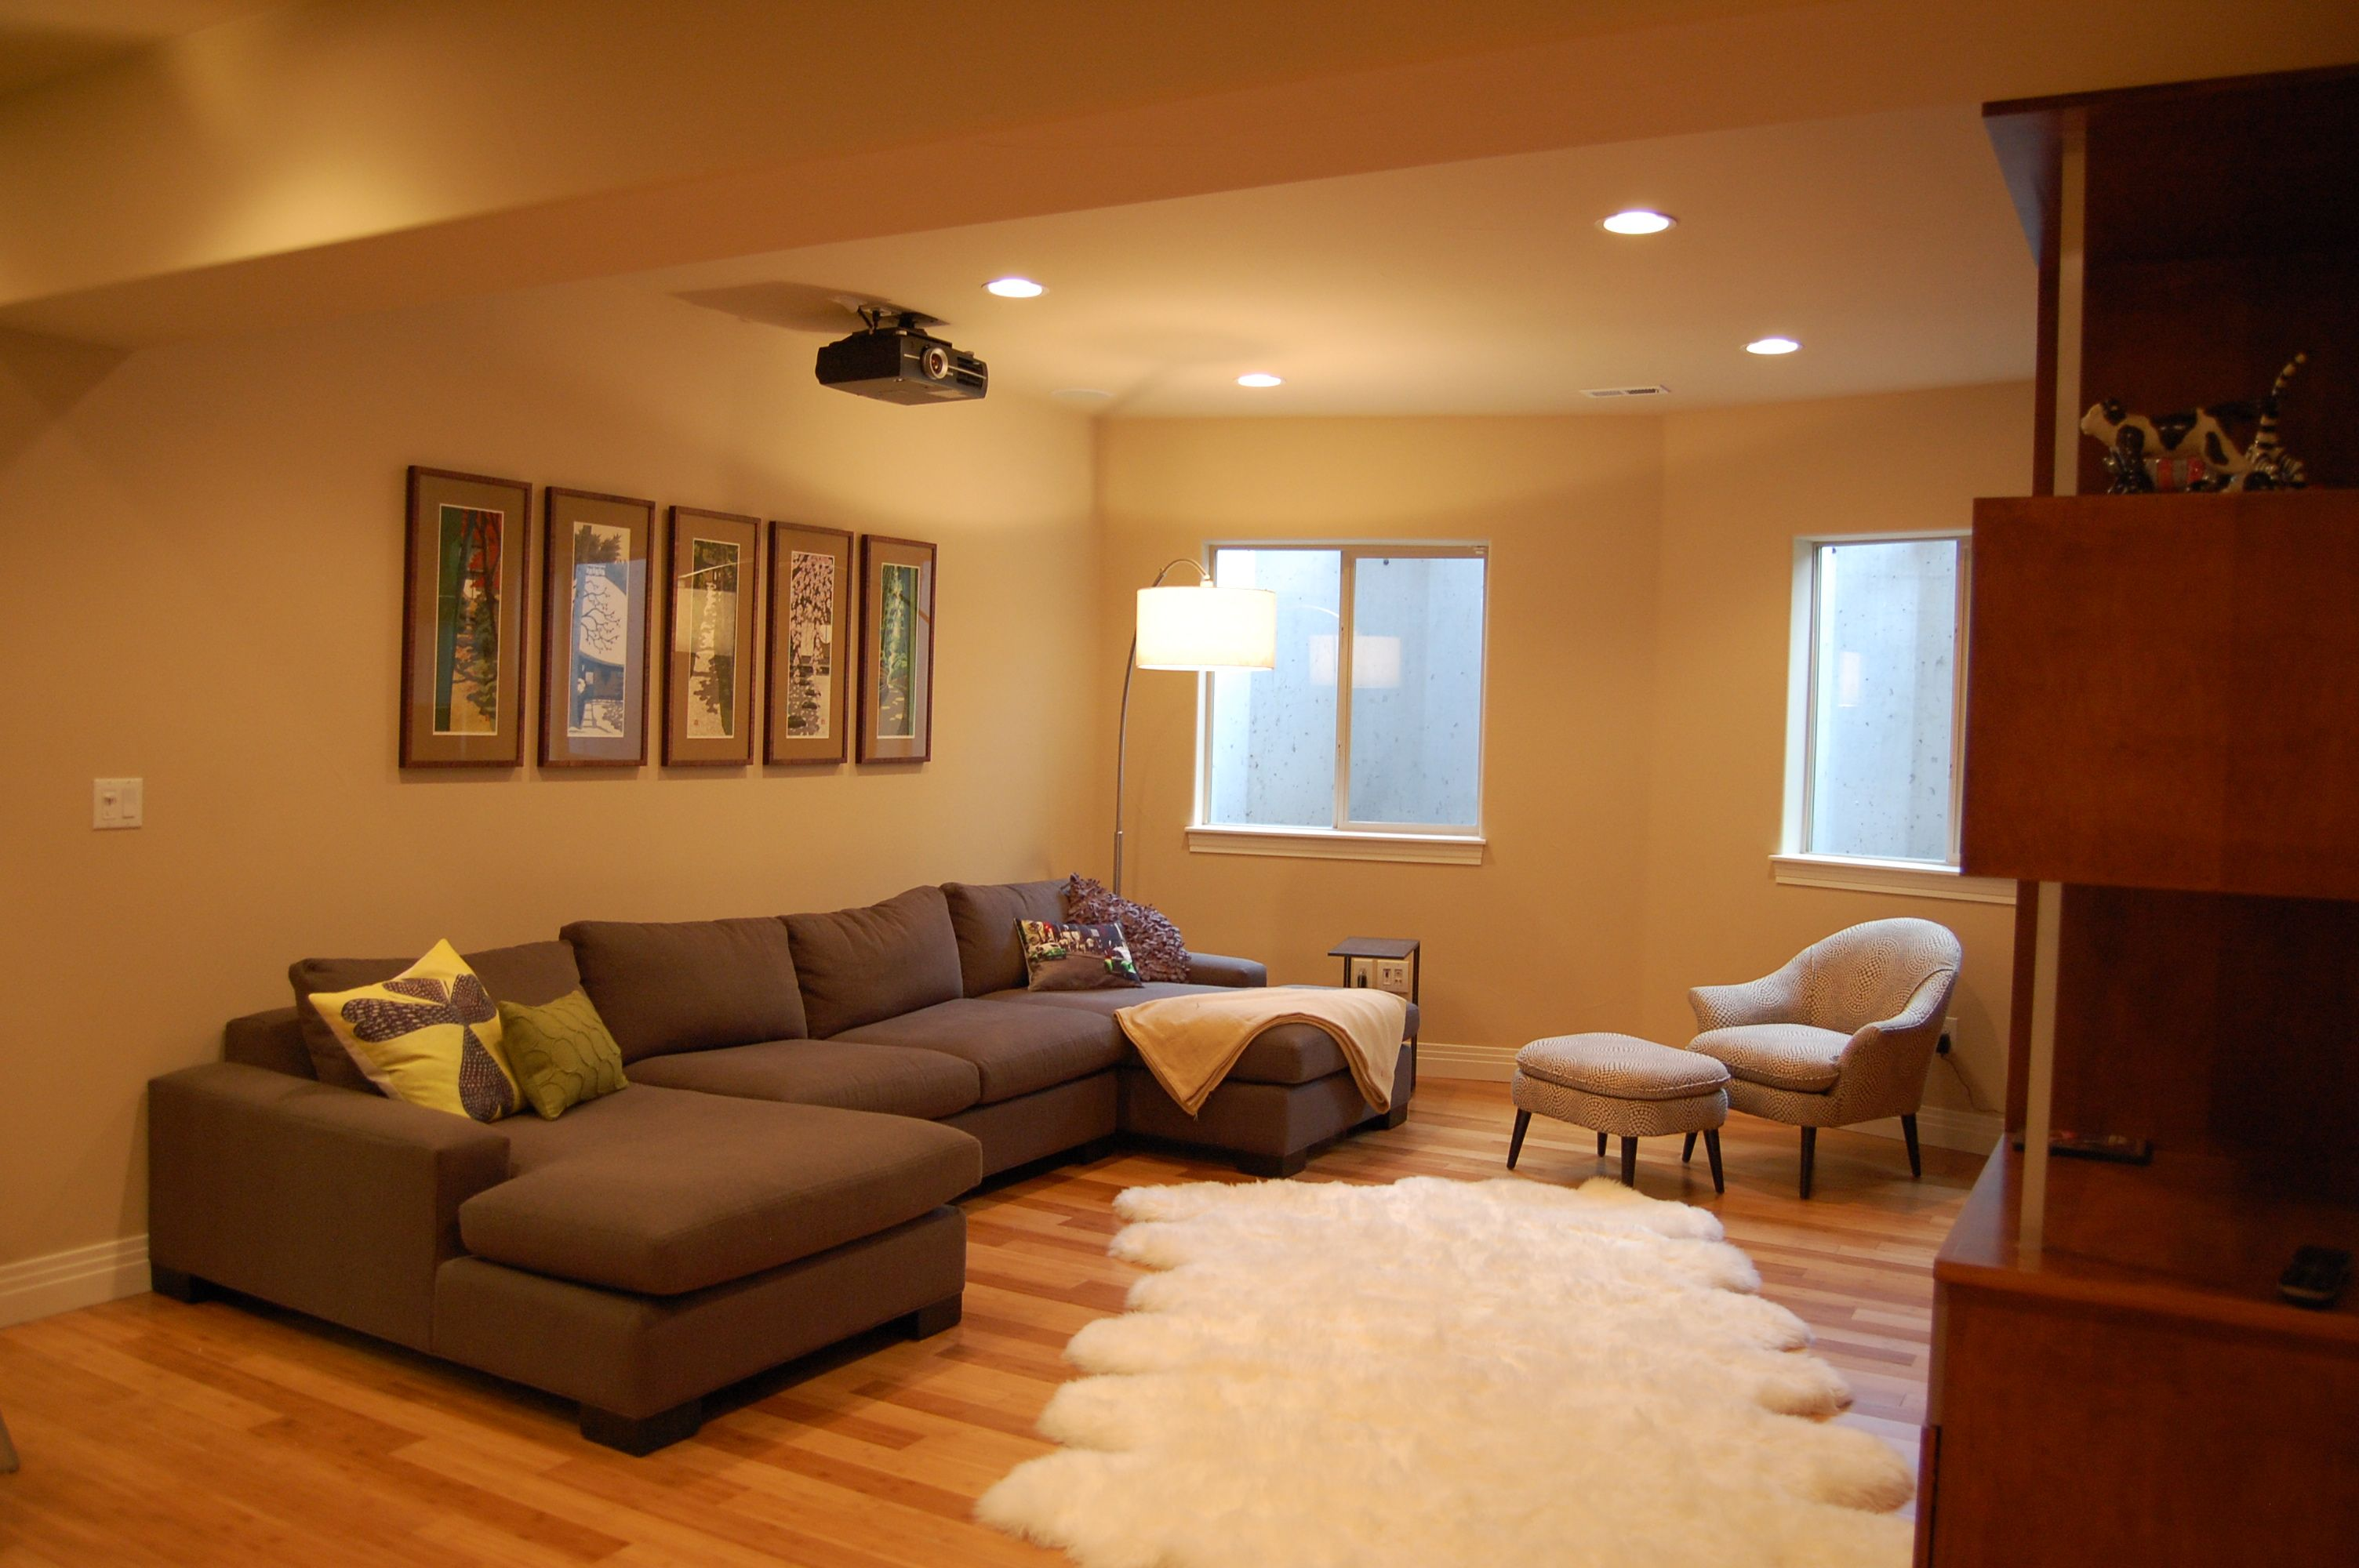 Basement Living Room Designs Brilliant 23 Most Popular Small Basement Ideas Decor And Remodel  Man Inspiration Design